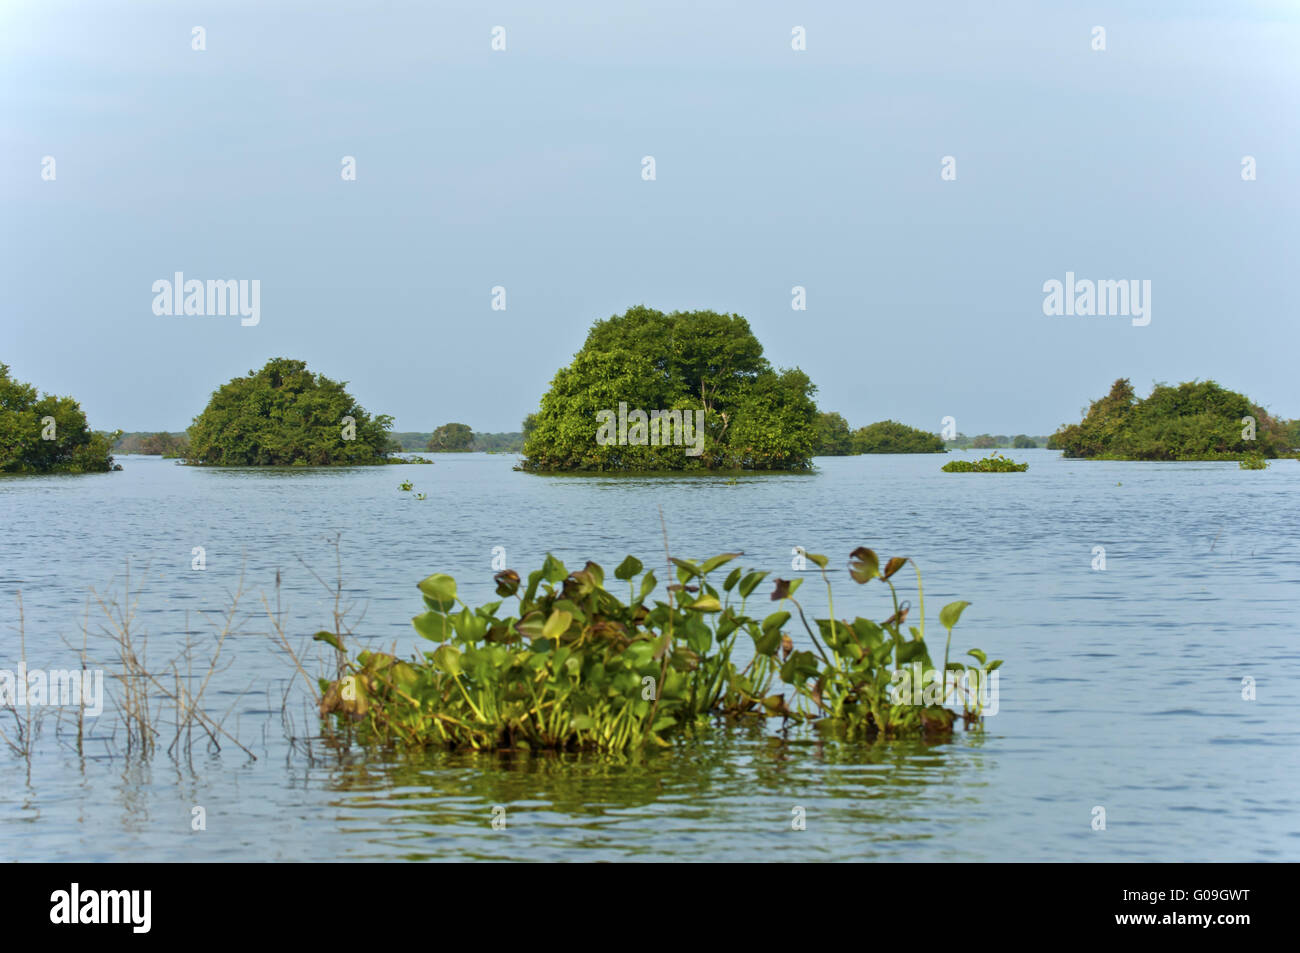 Flooded areas at Tonle Sap lake, Cambodia Stock Photo